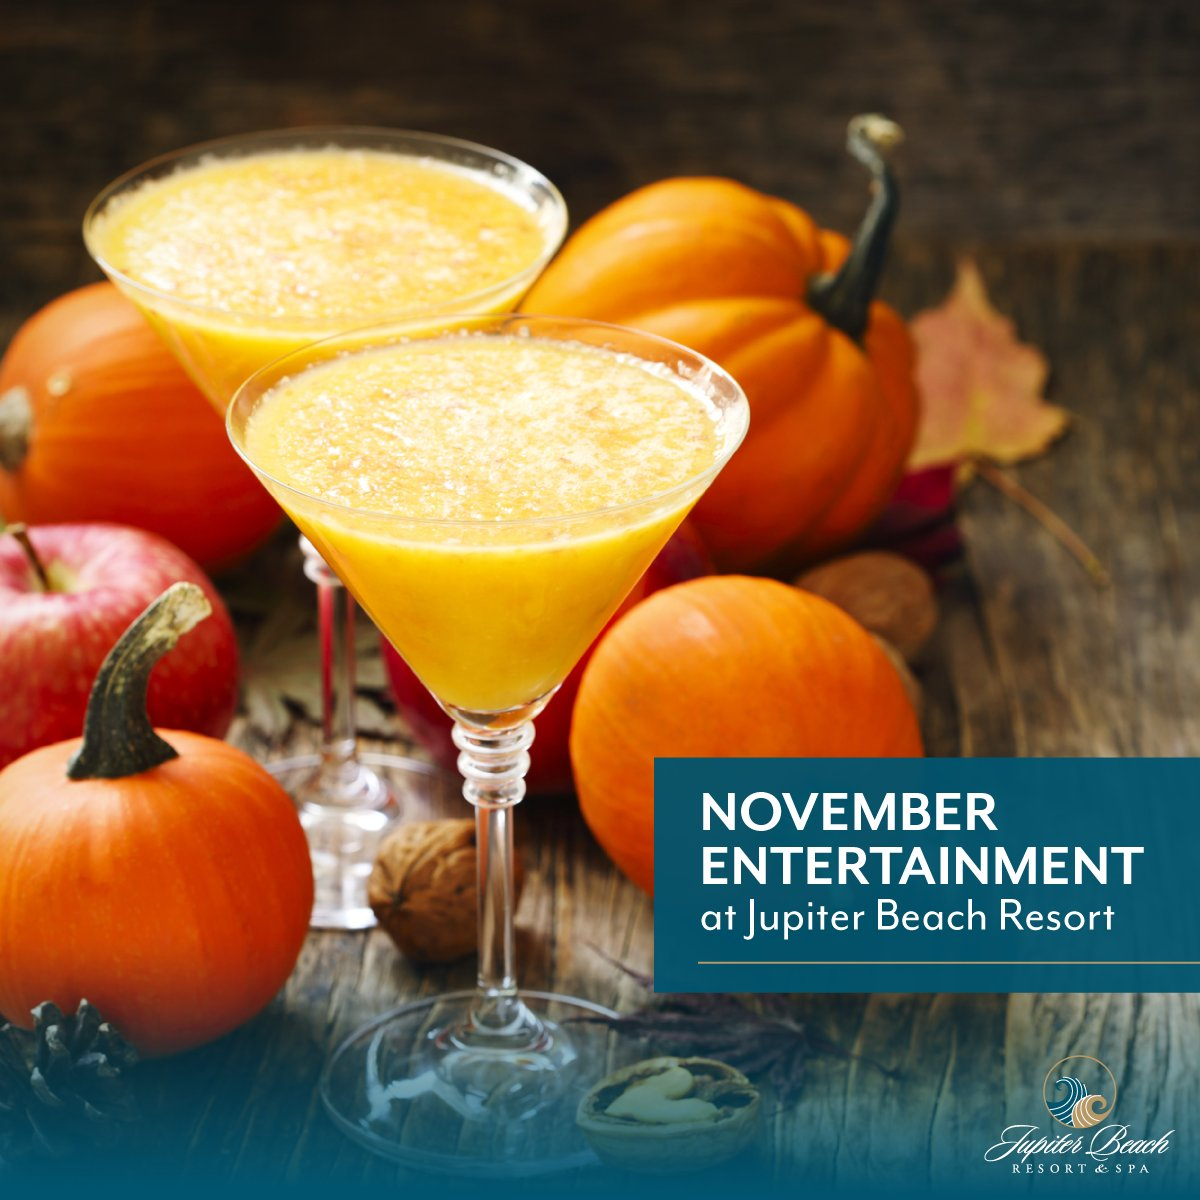 Our November live entertainment schedule is out. Join us for live music every Friday through Sunday, plus happy hour food and drink specials Monday through Friday from 4 to 7 p.m. https://t.co/T5Ax7cZdh9